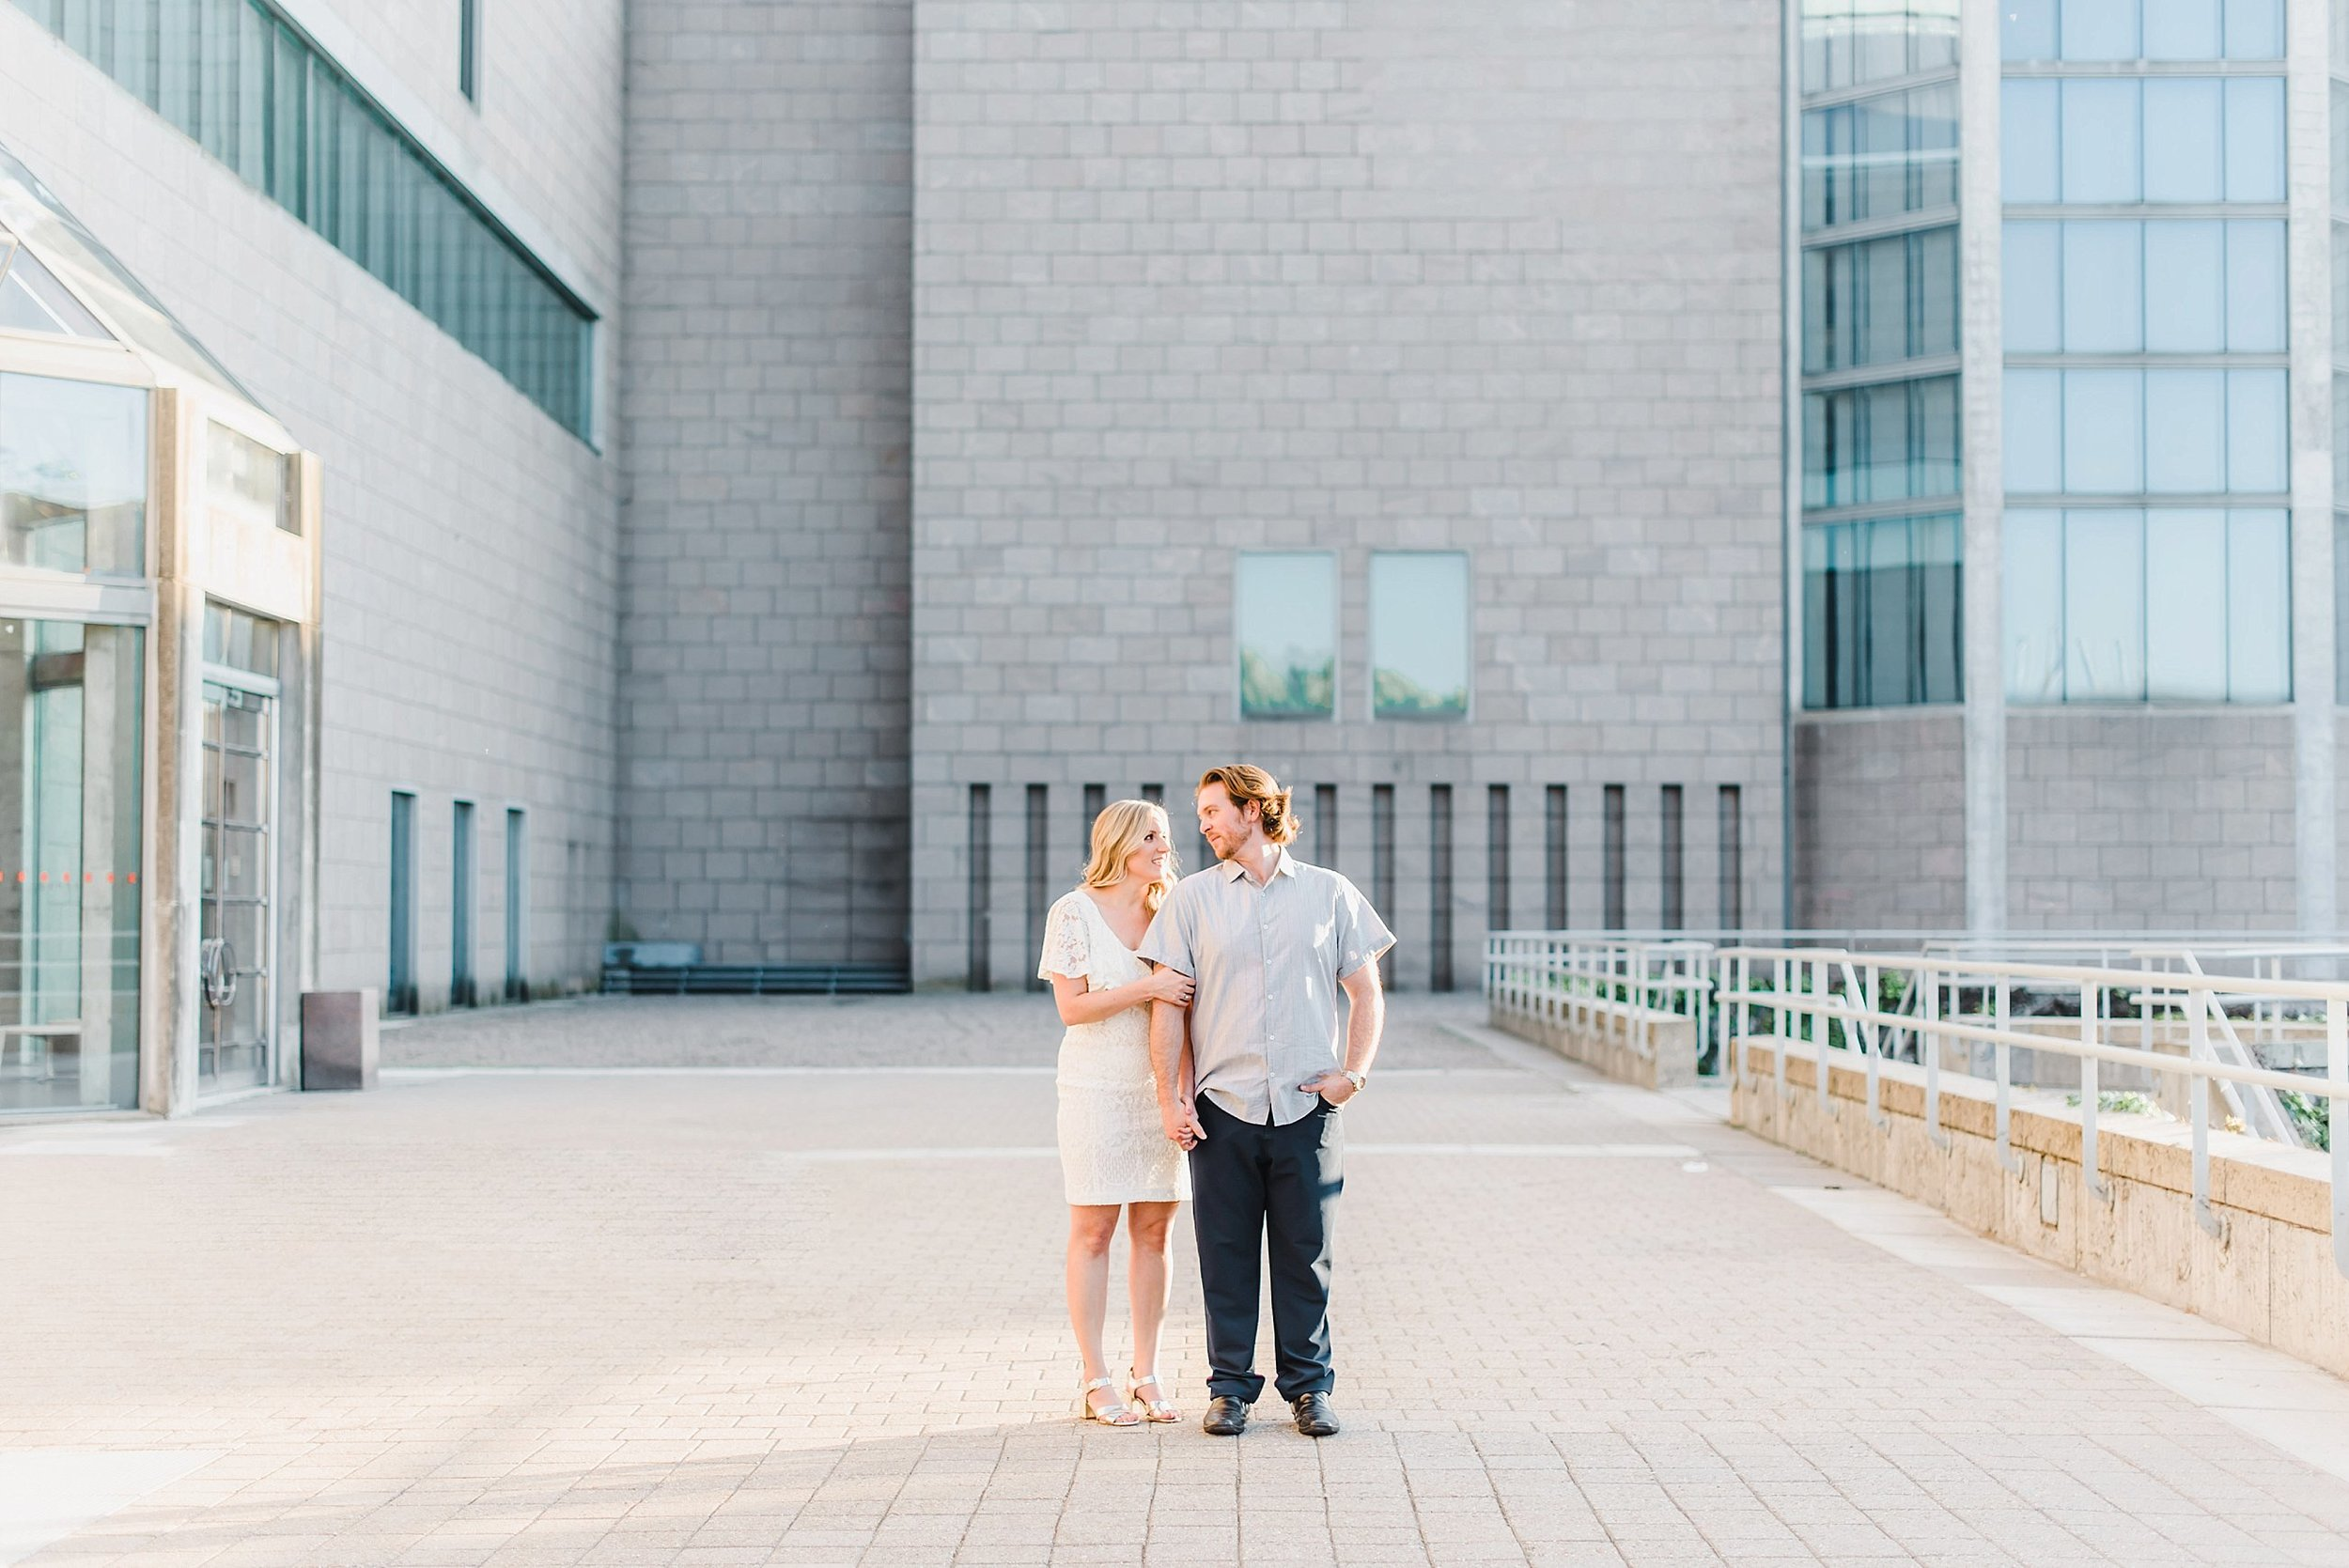 light airy indie fine art ottawa wedding photographer | Ali and Batoul Photography_0757.jpg